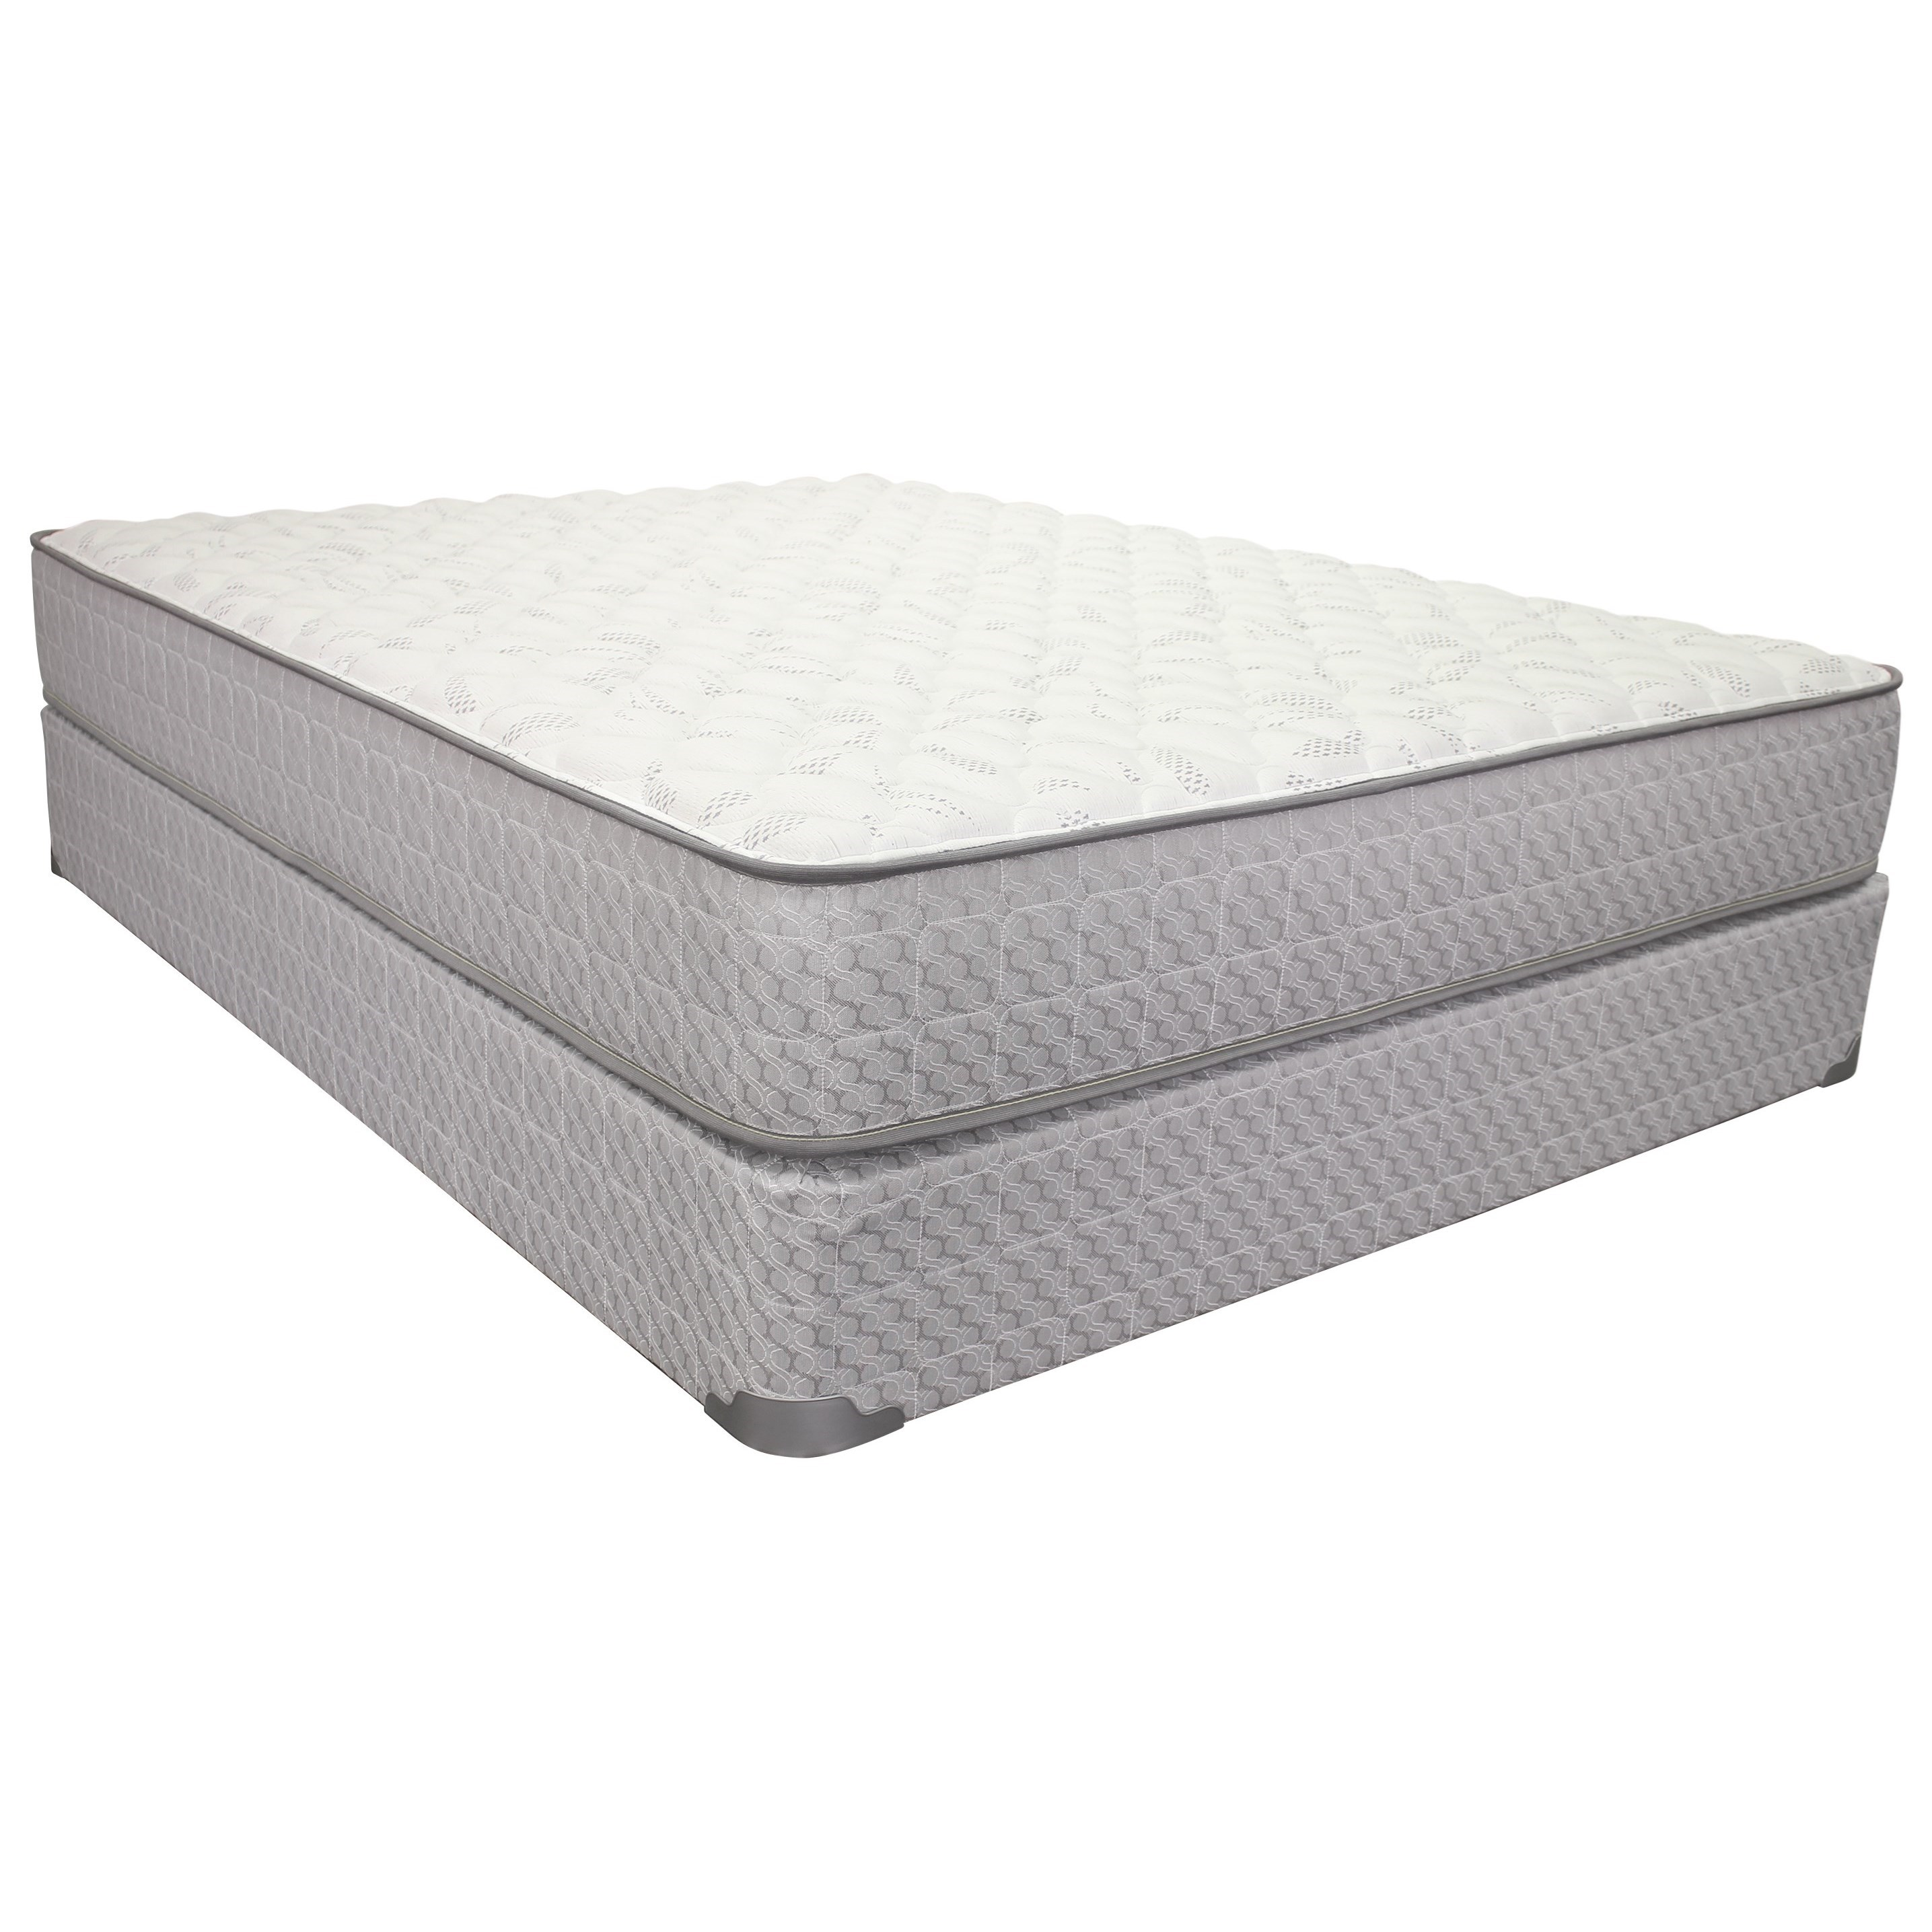 "Twin 10 1/2"" Firm Innerspring Mattress Set"